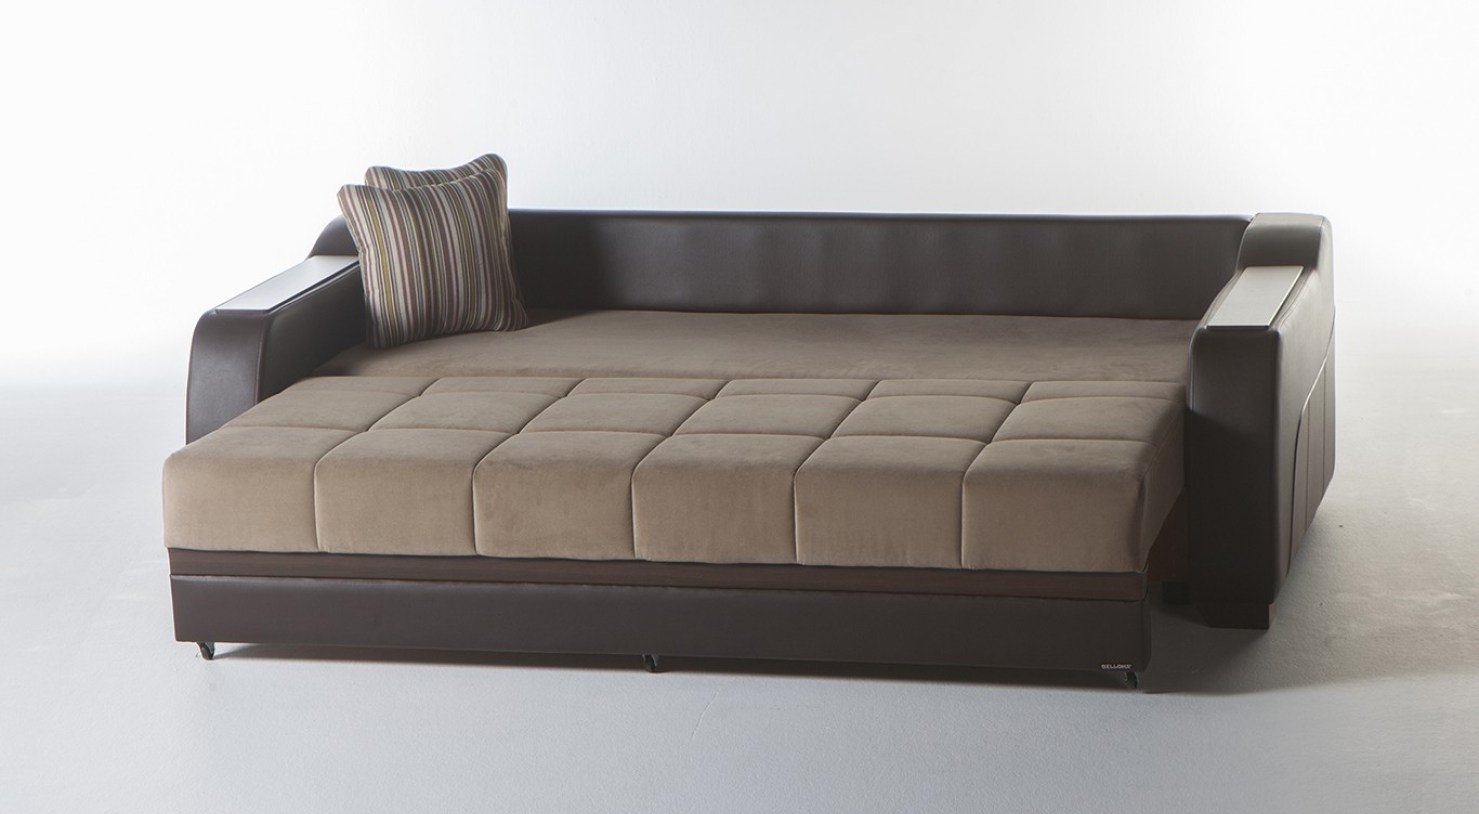 Hideaway Sofa Bed Philippines | Catosfera regarding Philippines Sectional Sofas (Image 3 of 10)